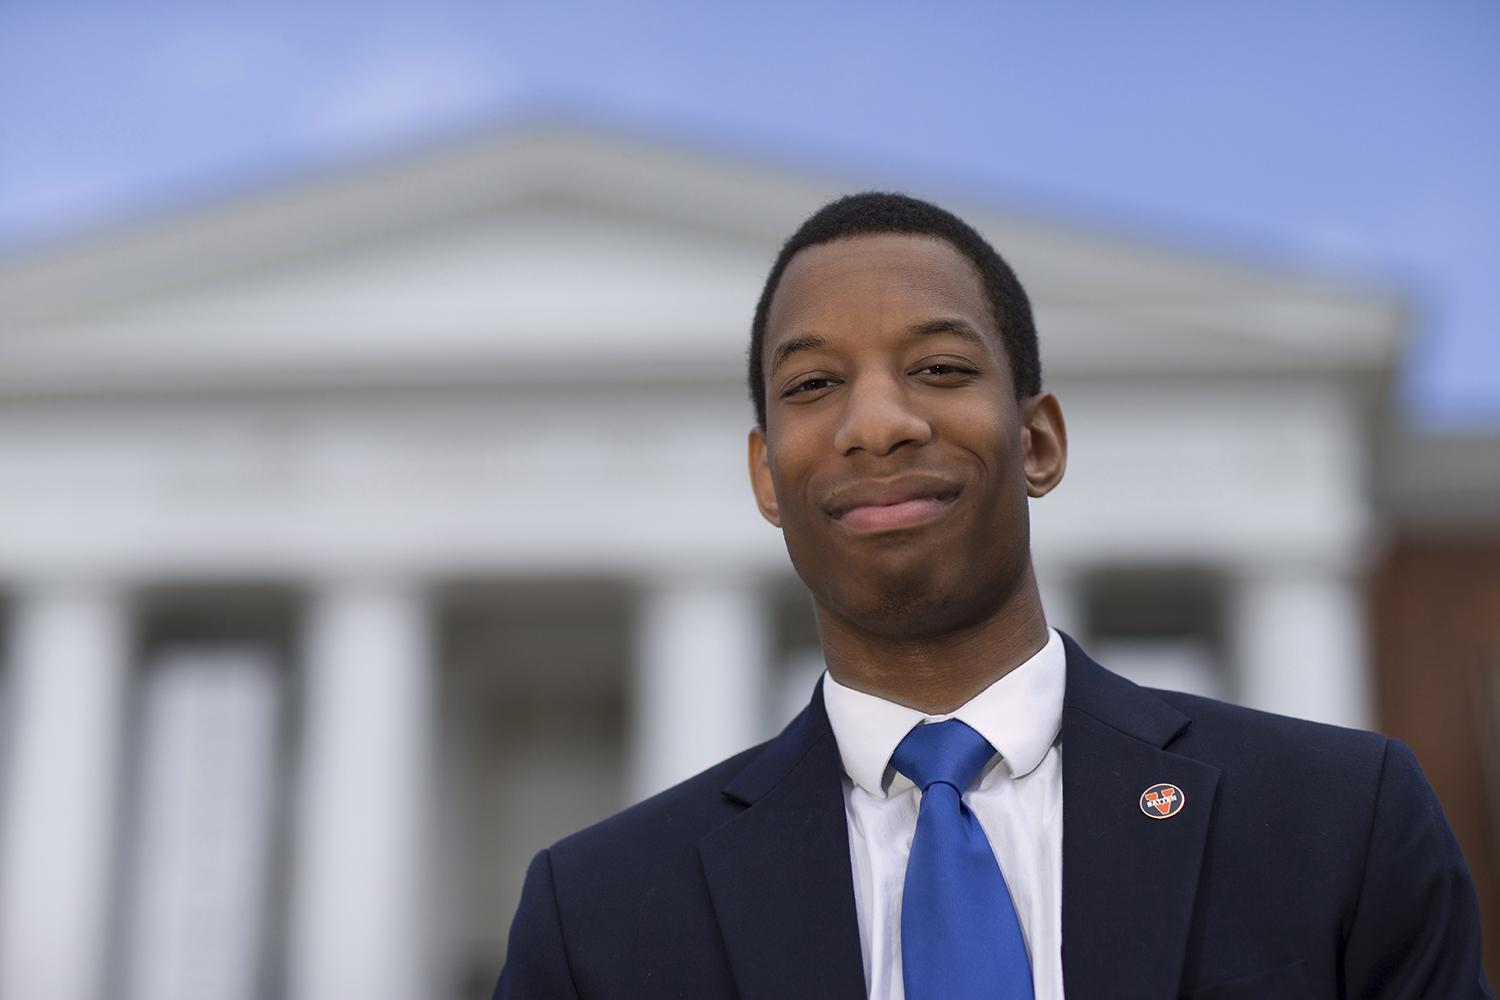 C. Malcolm Stewart of Midlothian will have his tuition and fees covered as he serves as senior resident adviser on the Lawn during the 2017-18 academic year. (UVA Alumni Association photo)